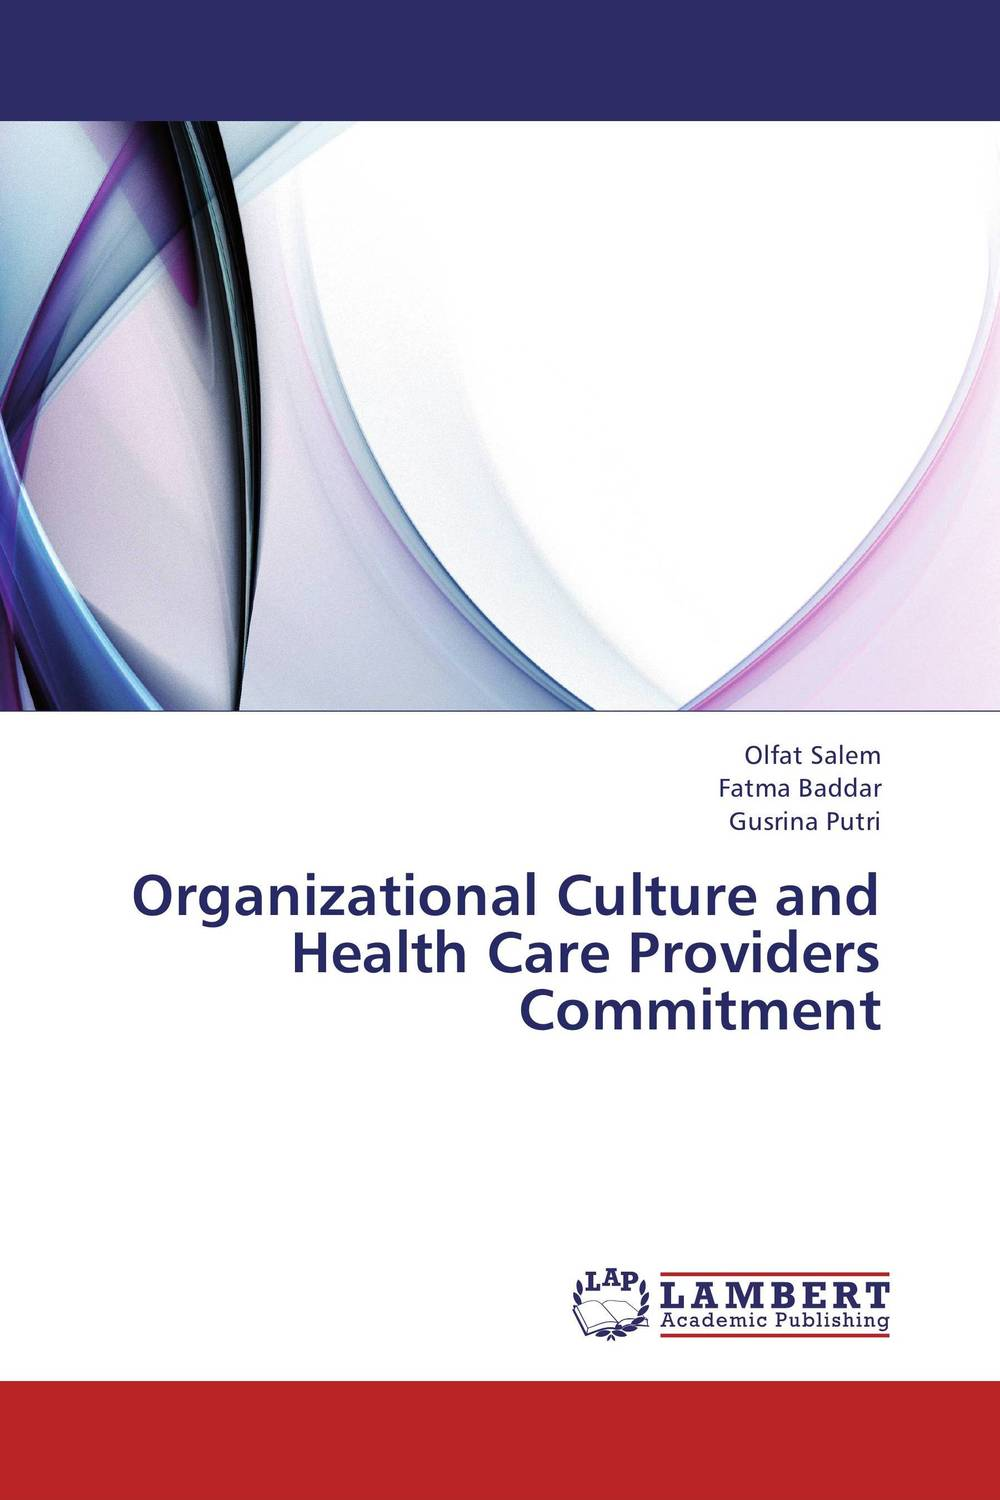 Organizational Culture and Health Care Providers Commitment purnima sareen sundeep kumar and rakesh singh molecular and pathological characterization of slow rusting in wheat